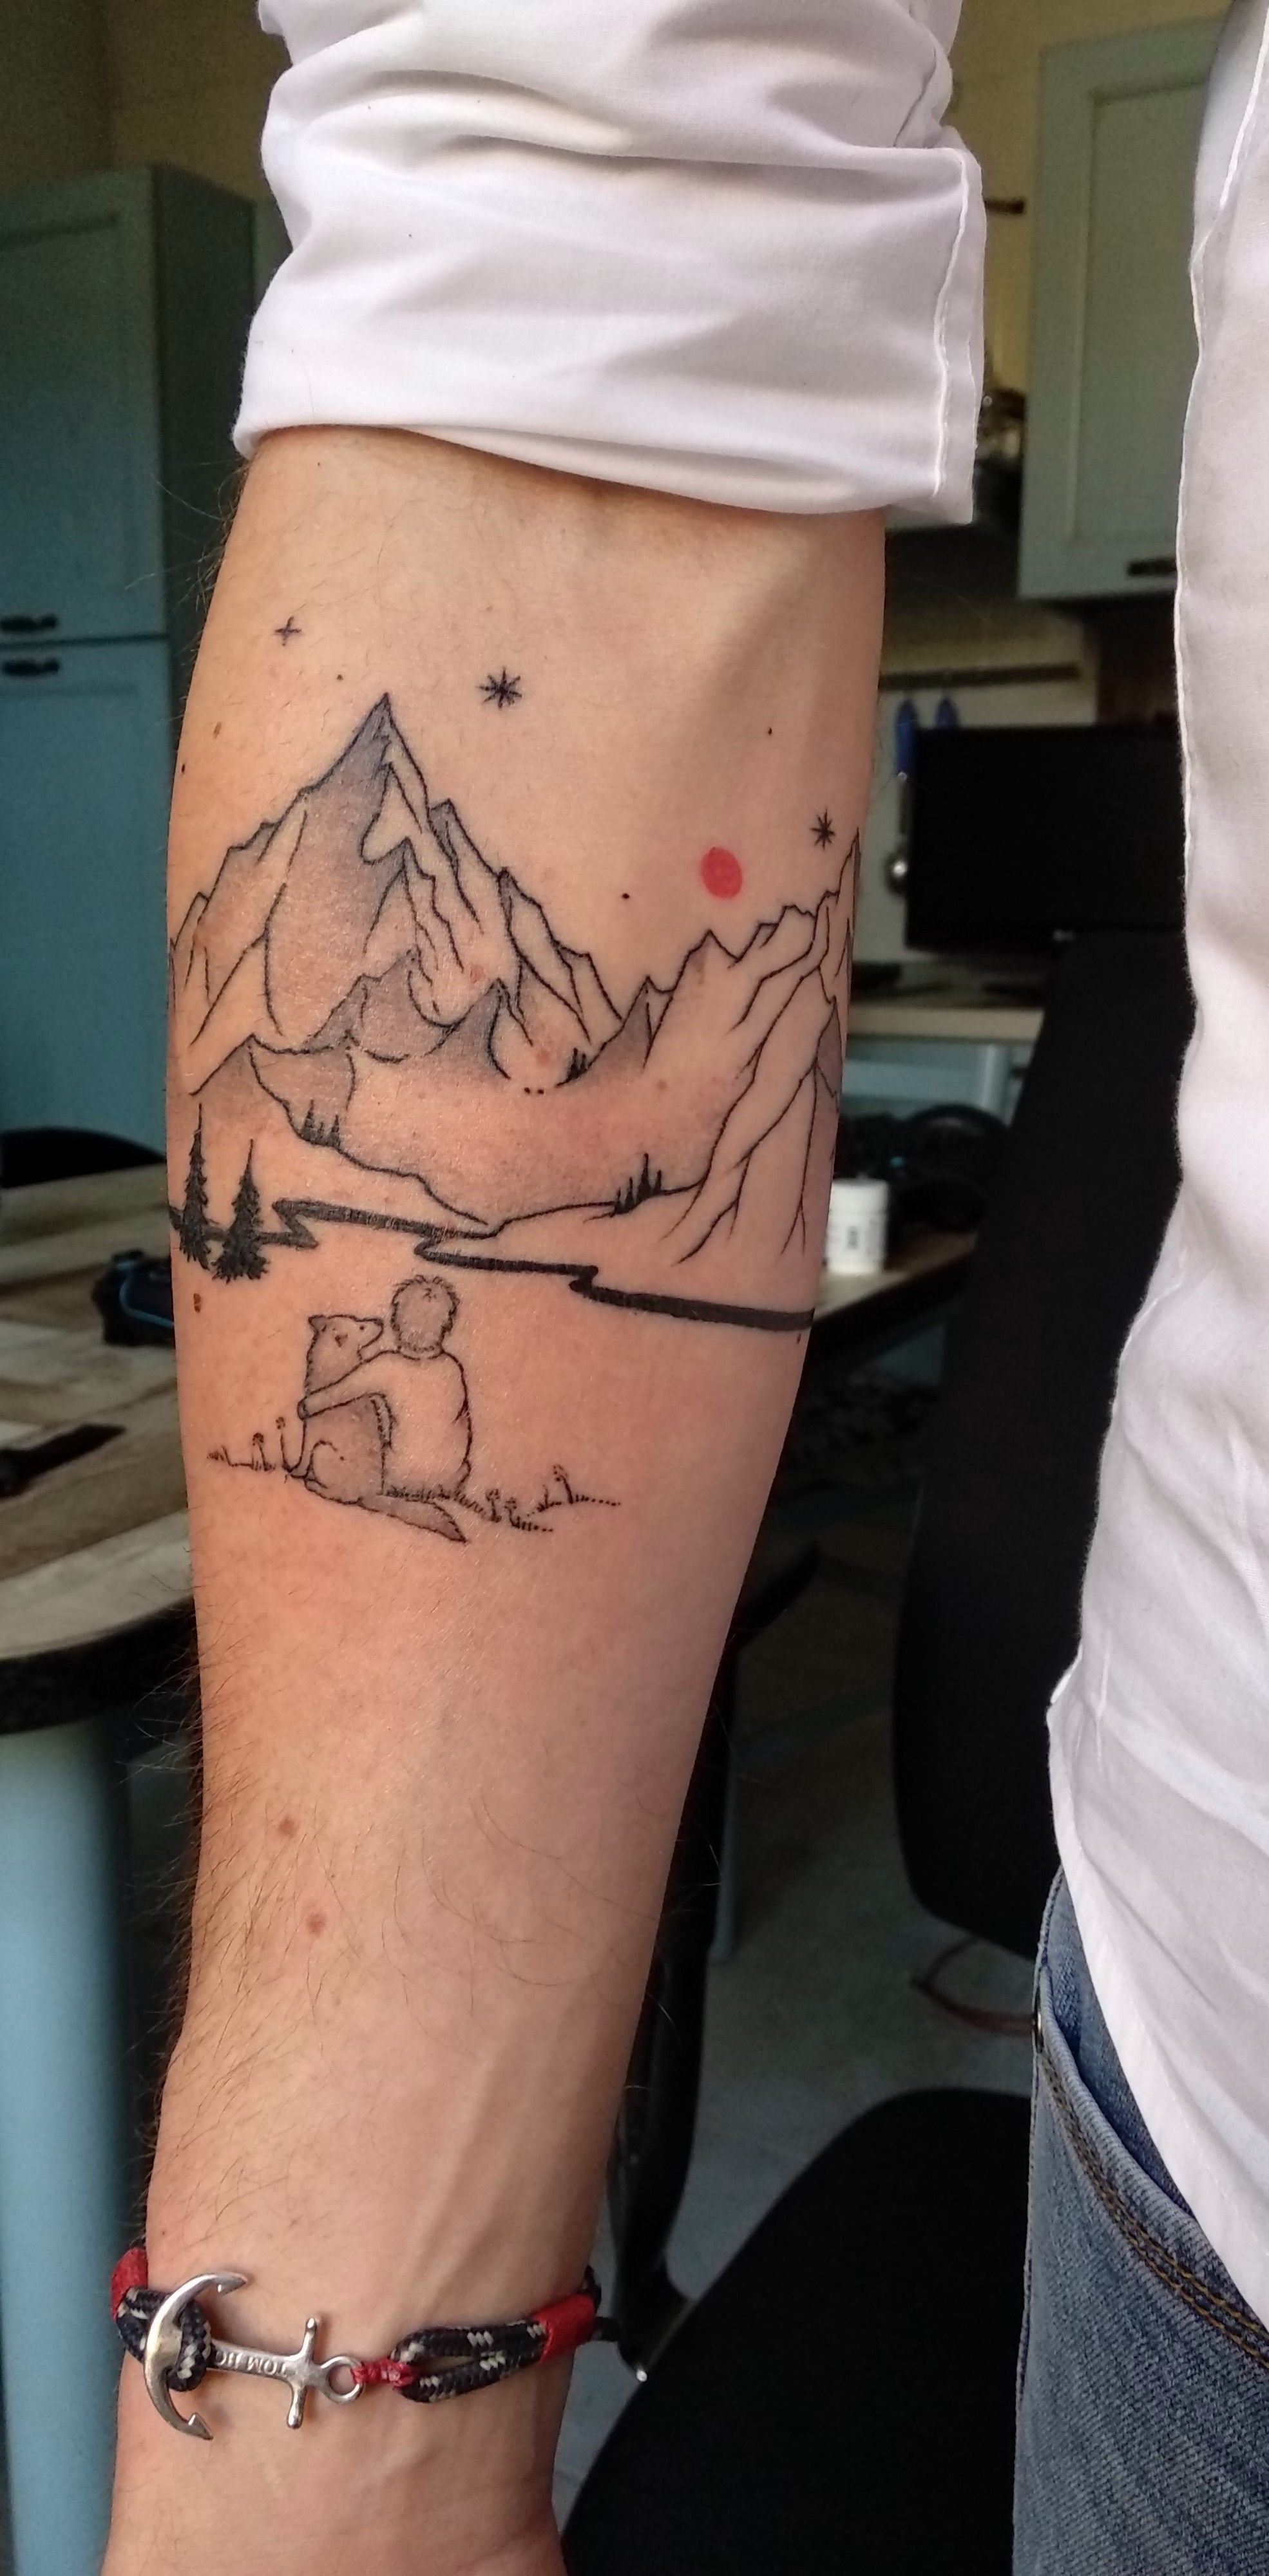 Dog and mountain tattoo image from upjohnx on reddit ink dog and mountain tattoo image from upjohnx on reddit gumiabroncs